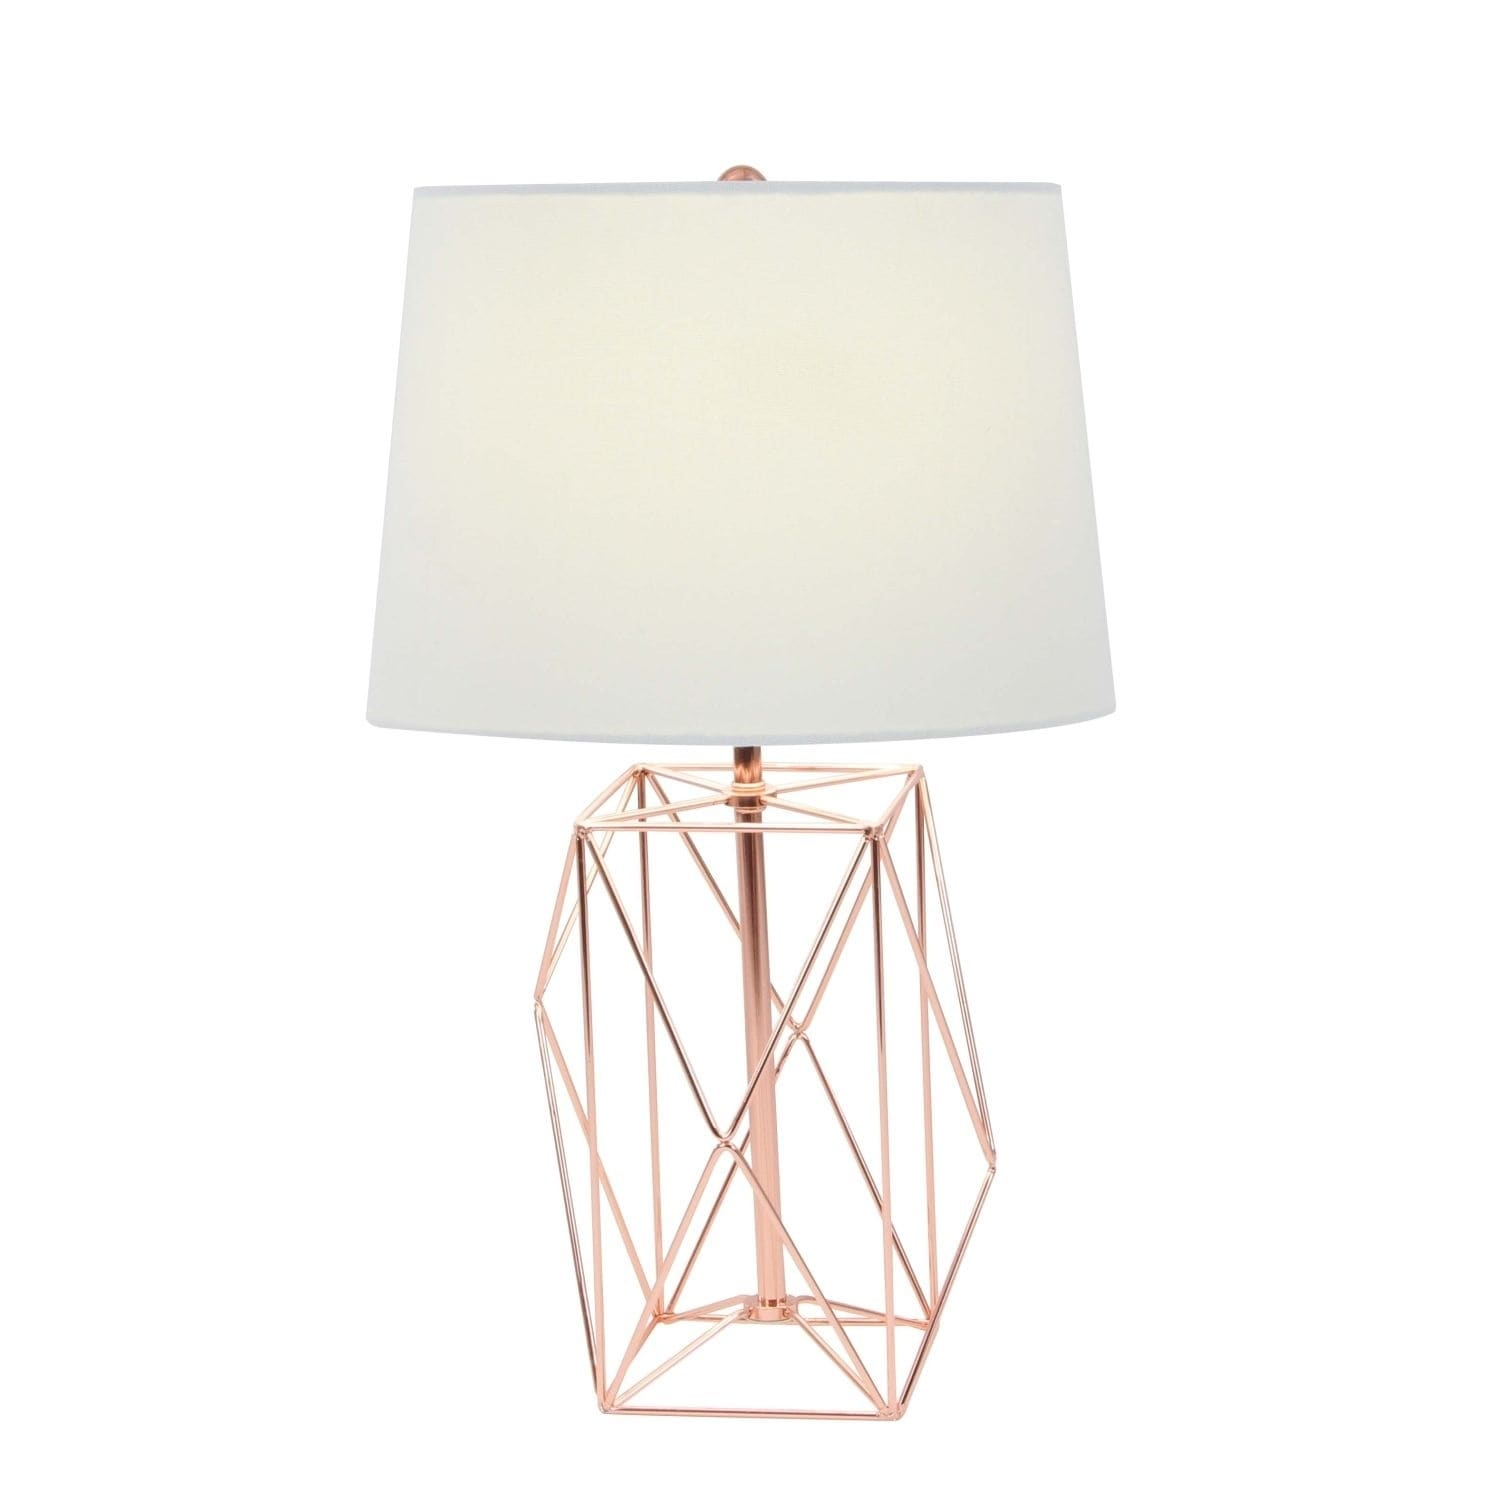 Shop studio 350 metal copper wire table lamp 21 inches high free shop studio 350 metal copper wire table lamp 21 inches high free shipping today overstock 17351012 greentooth Choice Image